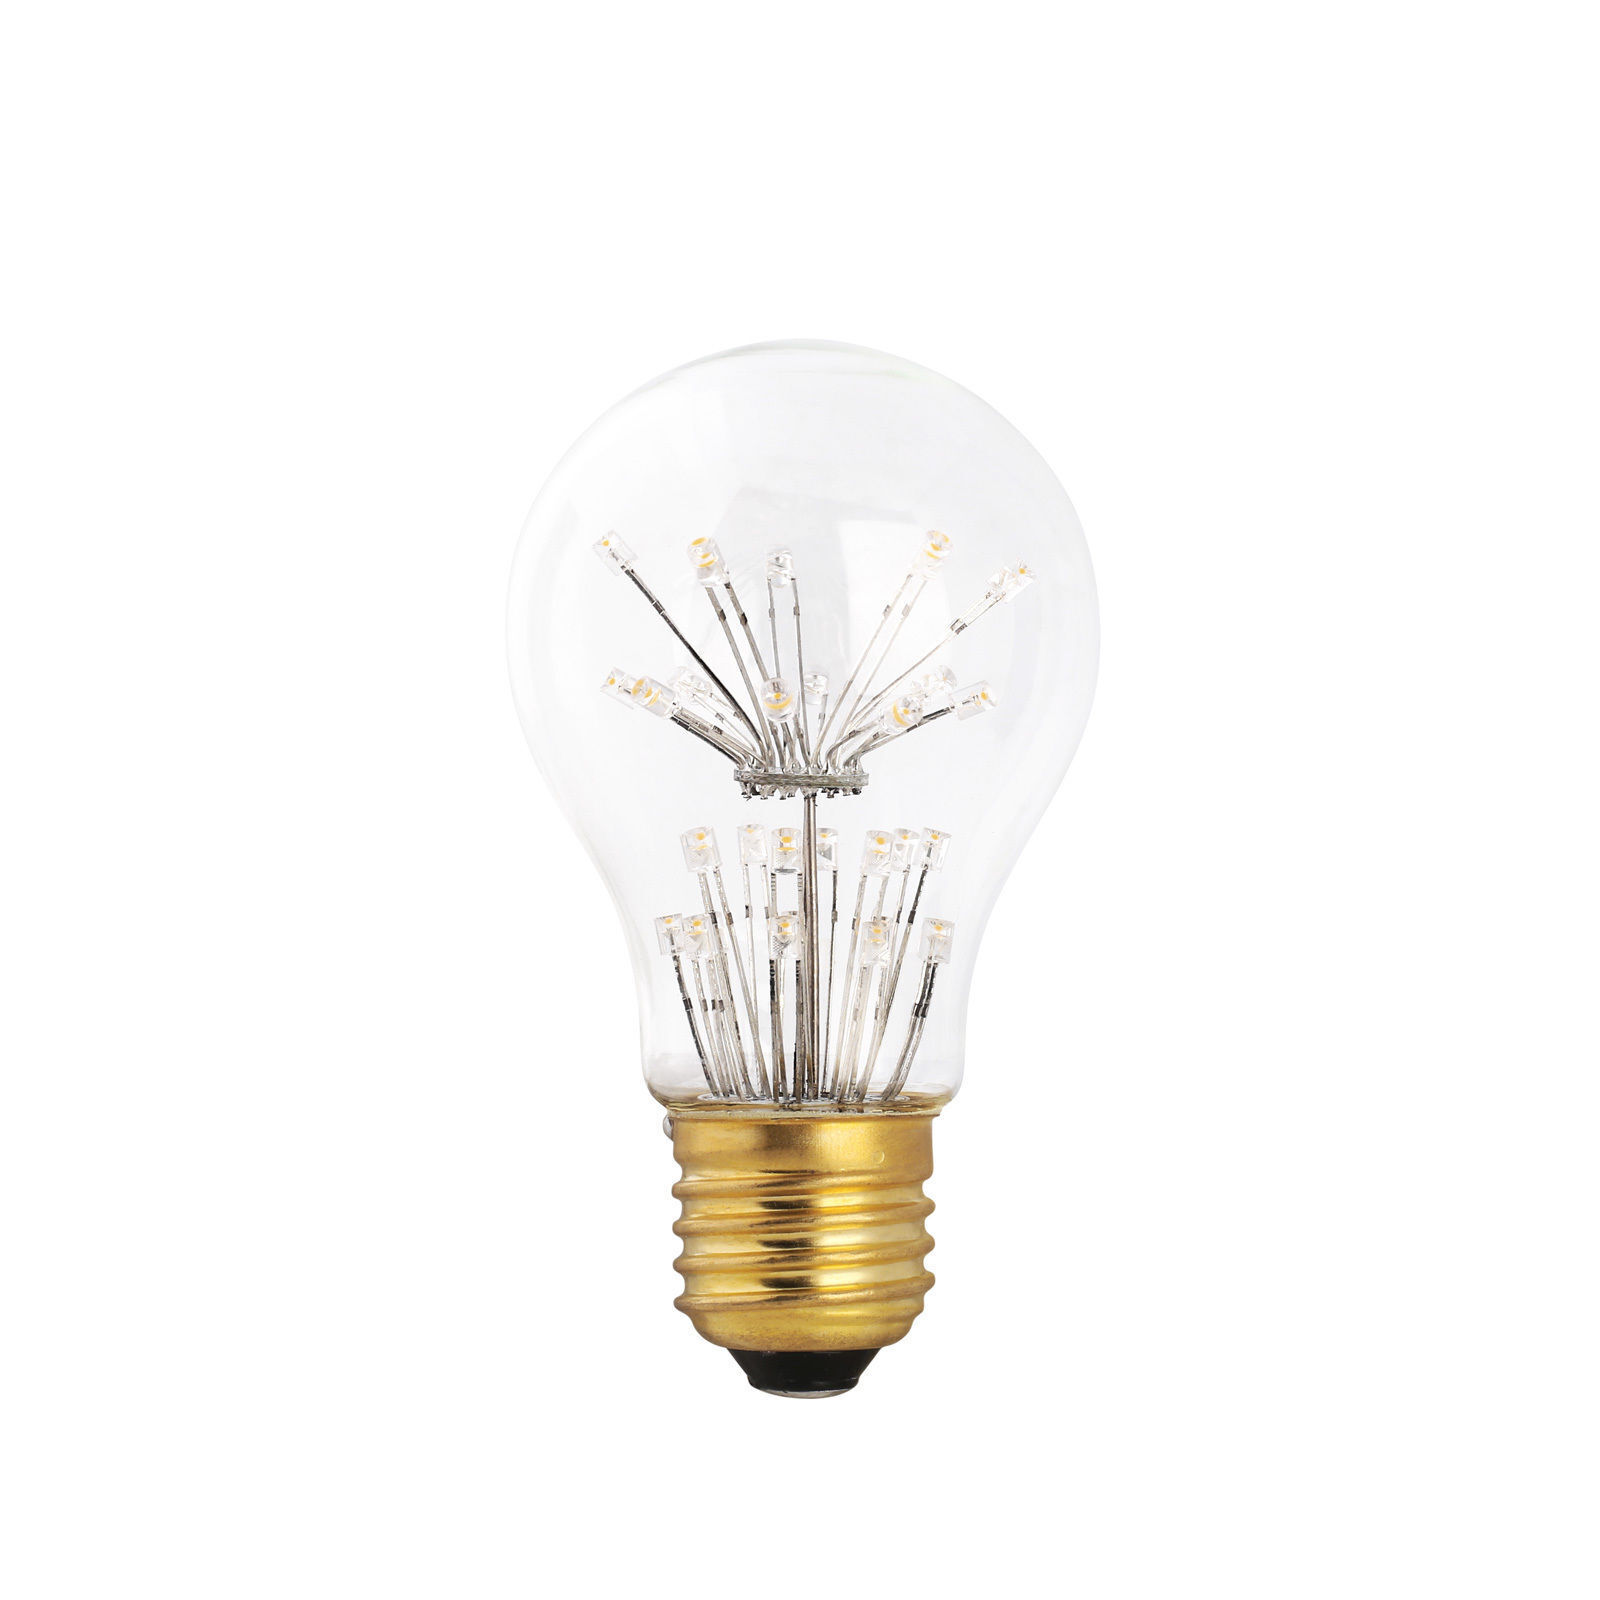 Led Filament Light Bulb E27 Edison Retro Vintage Lamps 3w